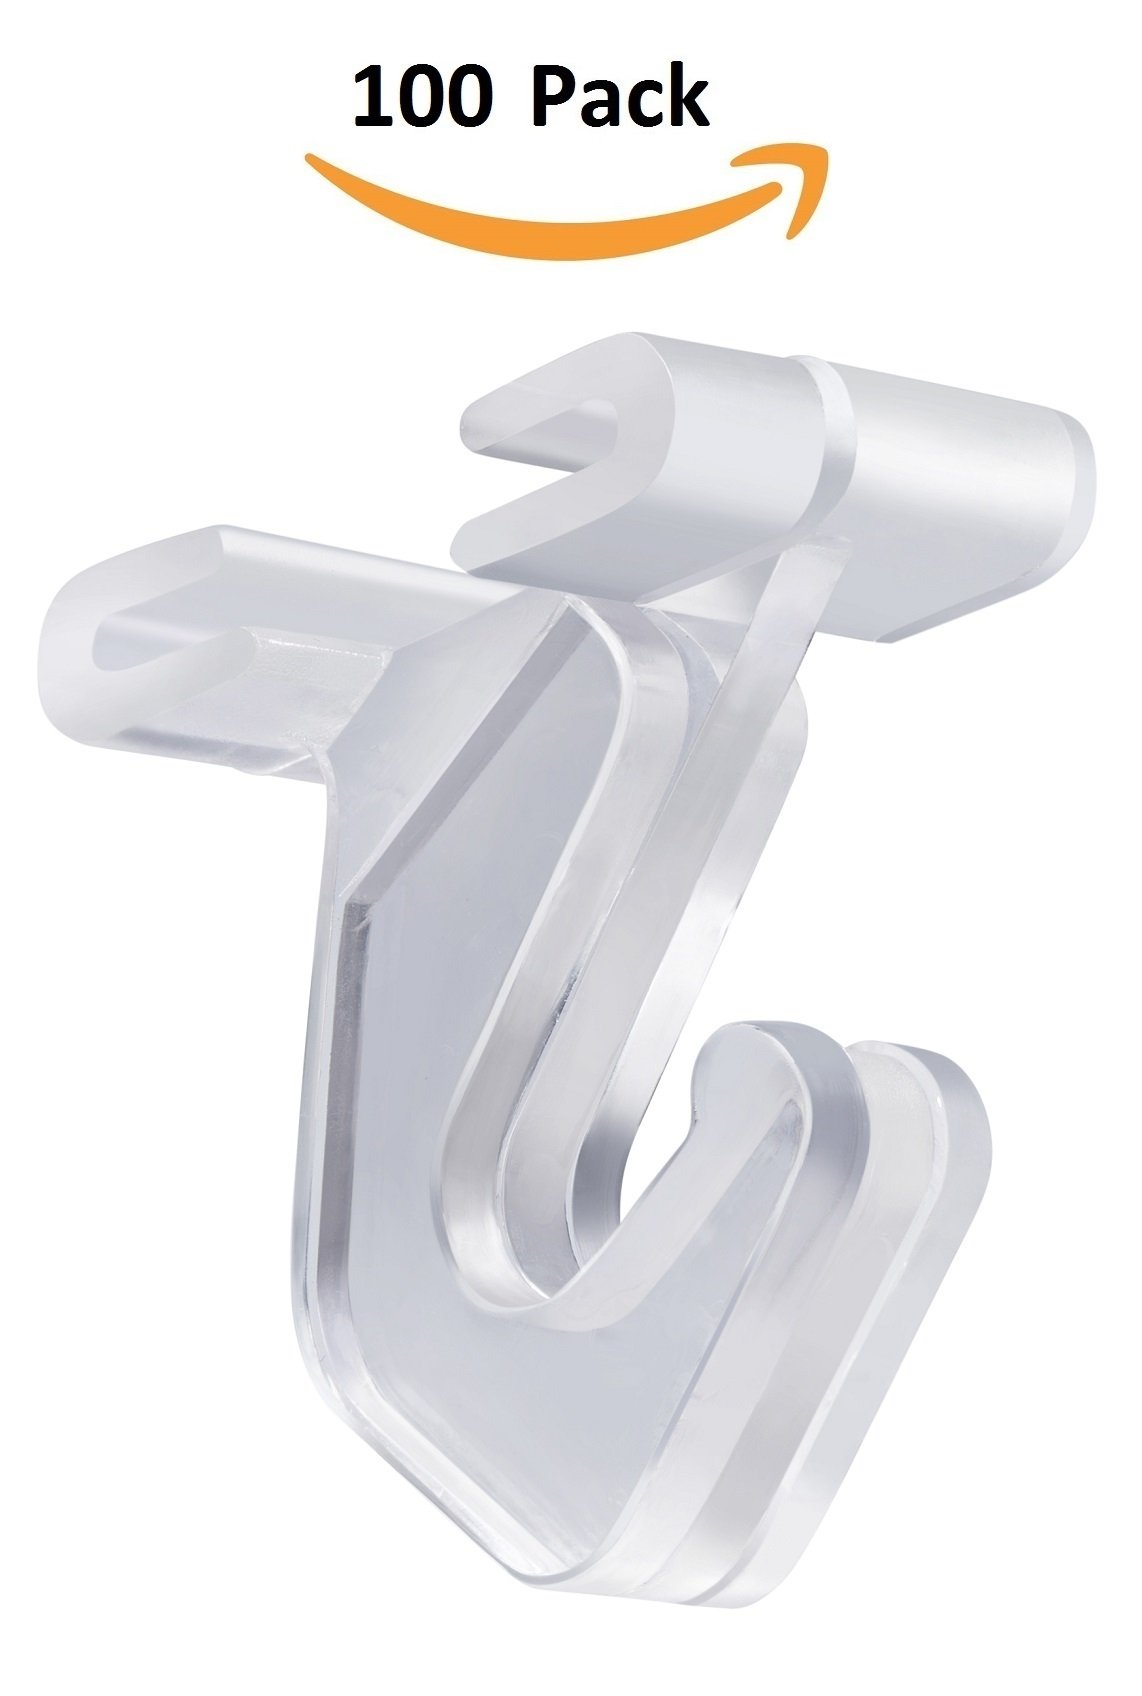 Pack of 100 - Crystal Clear Hinged Polycarbonate Ceiling Hooks for Drop-Ceiling T-Bars, Holds up to 15 lbs. 1''W x 1 ½''H